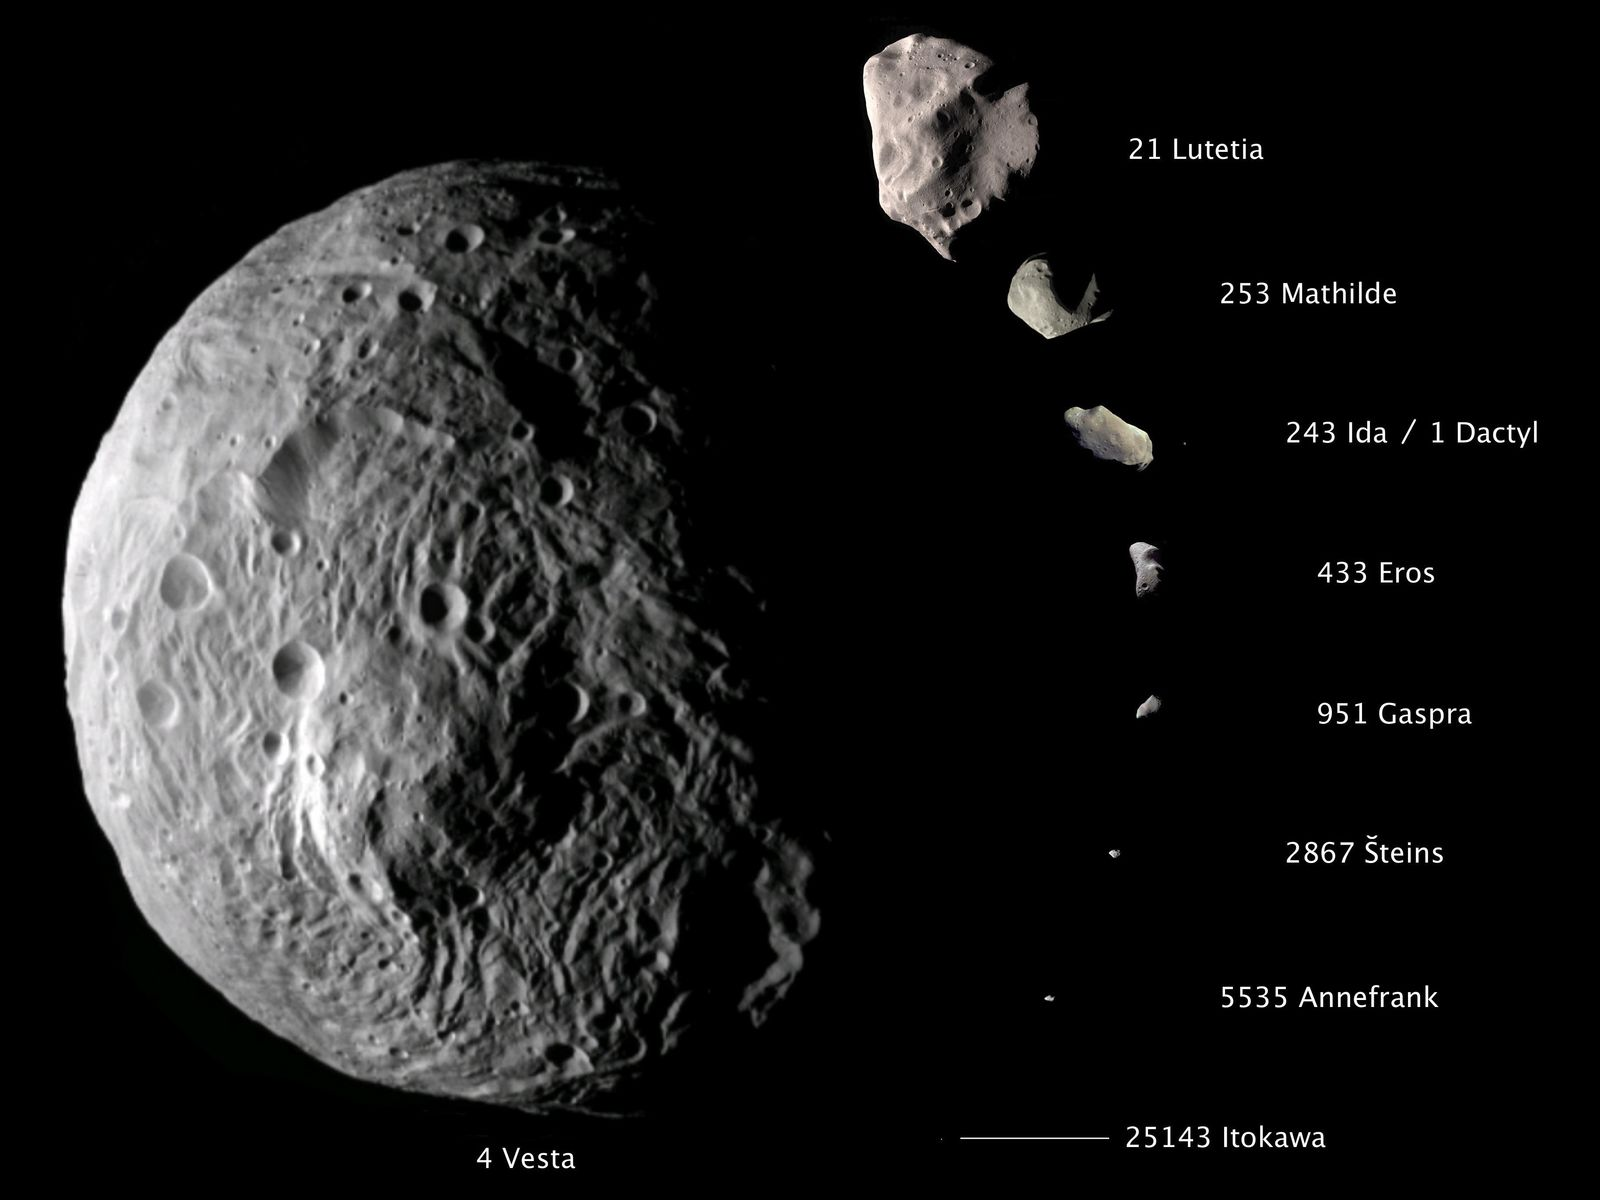 This composite image shows the comparative sizes of nine asteroids. Up until now, Lutetia, with a diameter of 81 miles (130 kilometers), was the largest asteroid visited by a spacecraft, which occurred during a flyby.